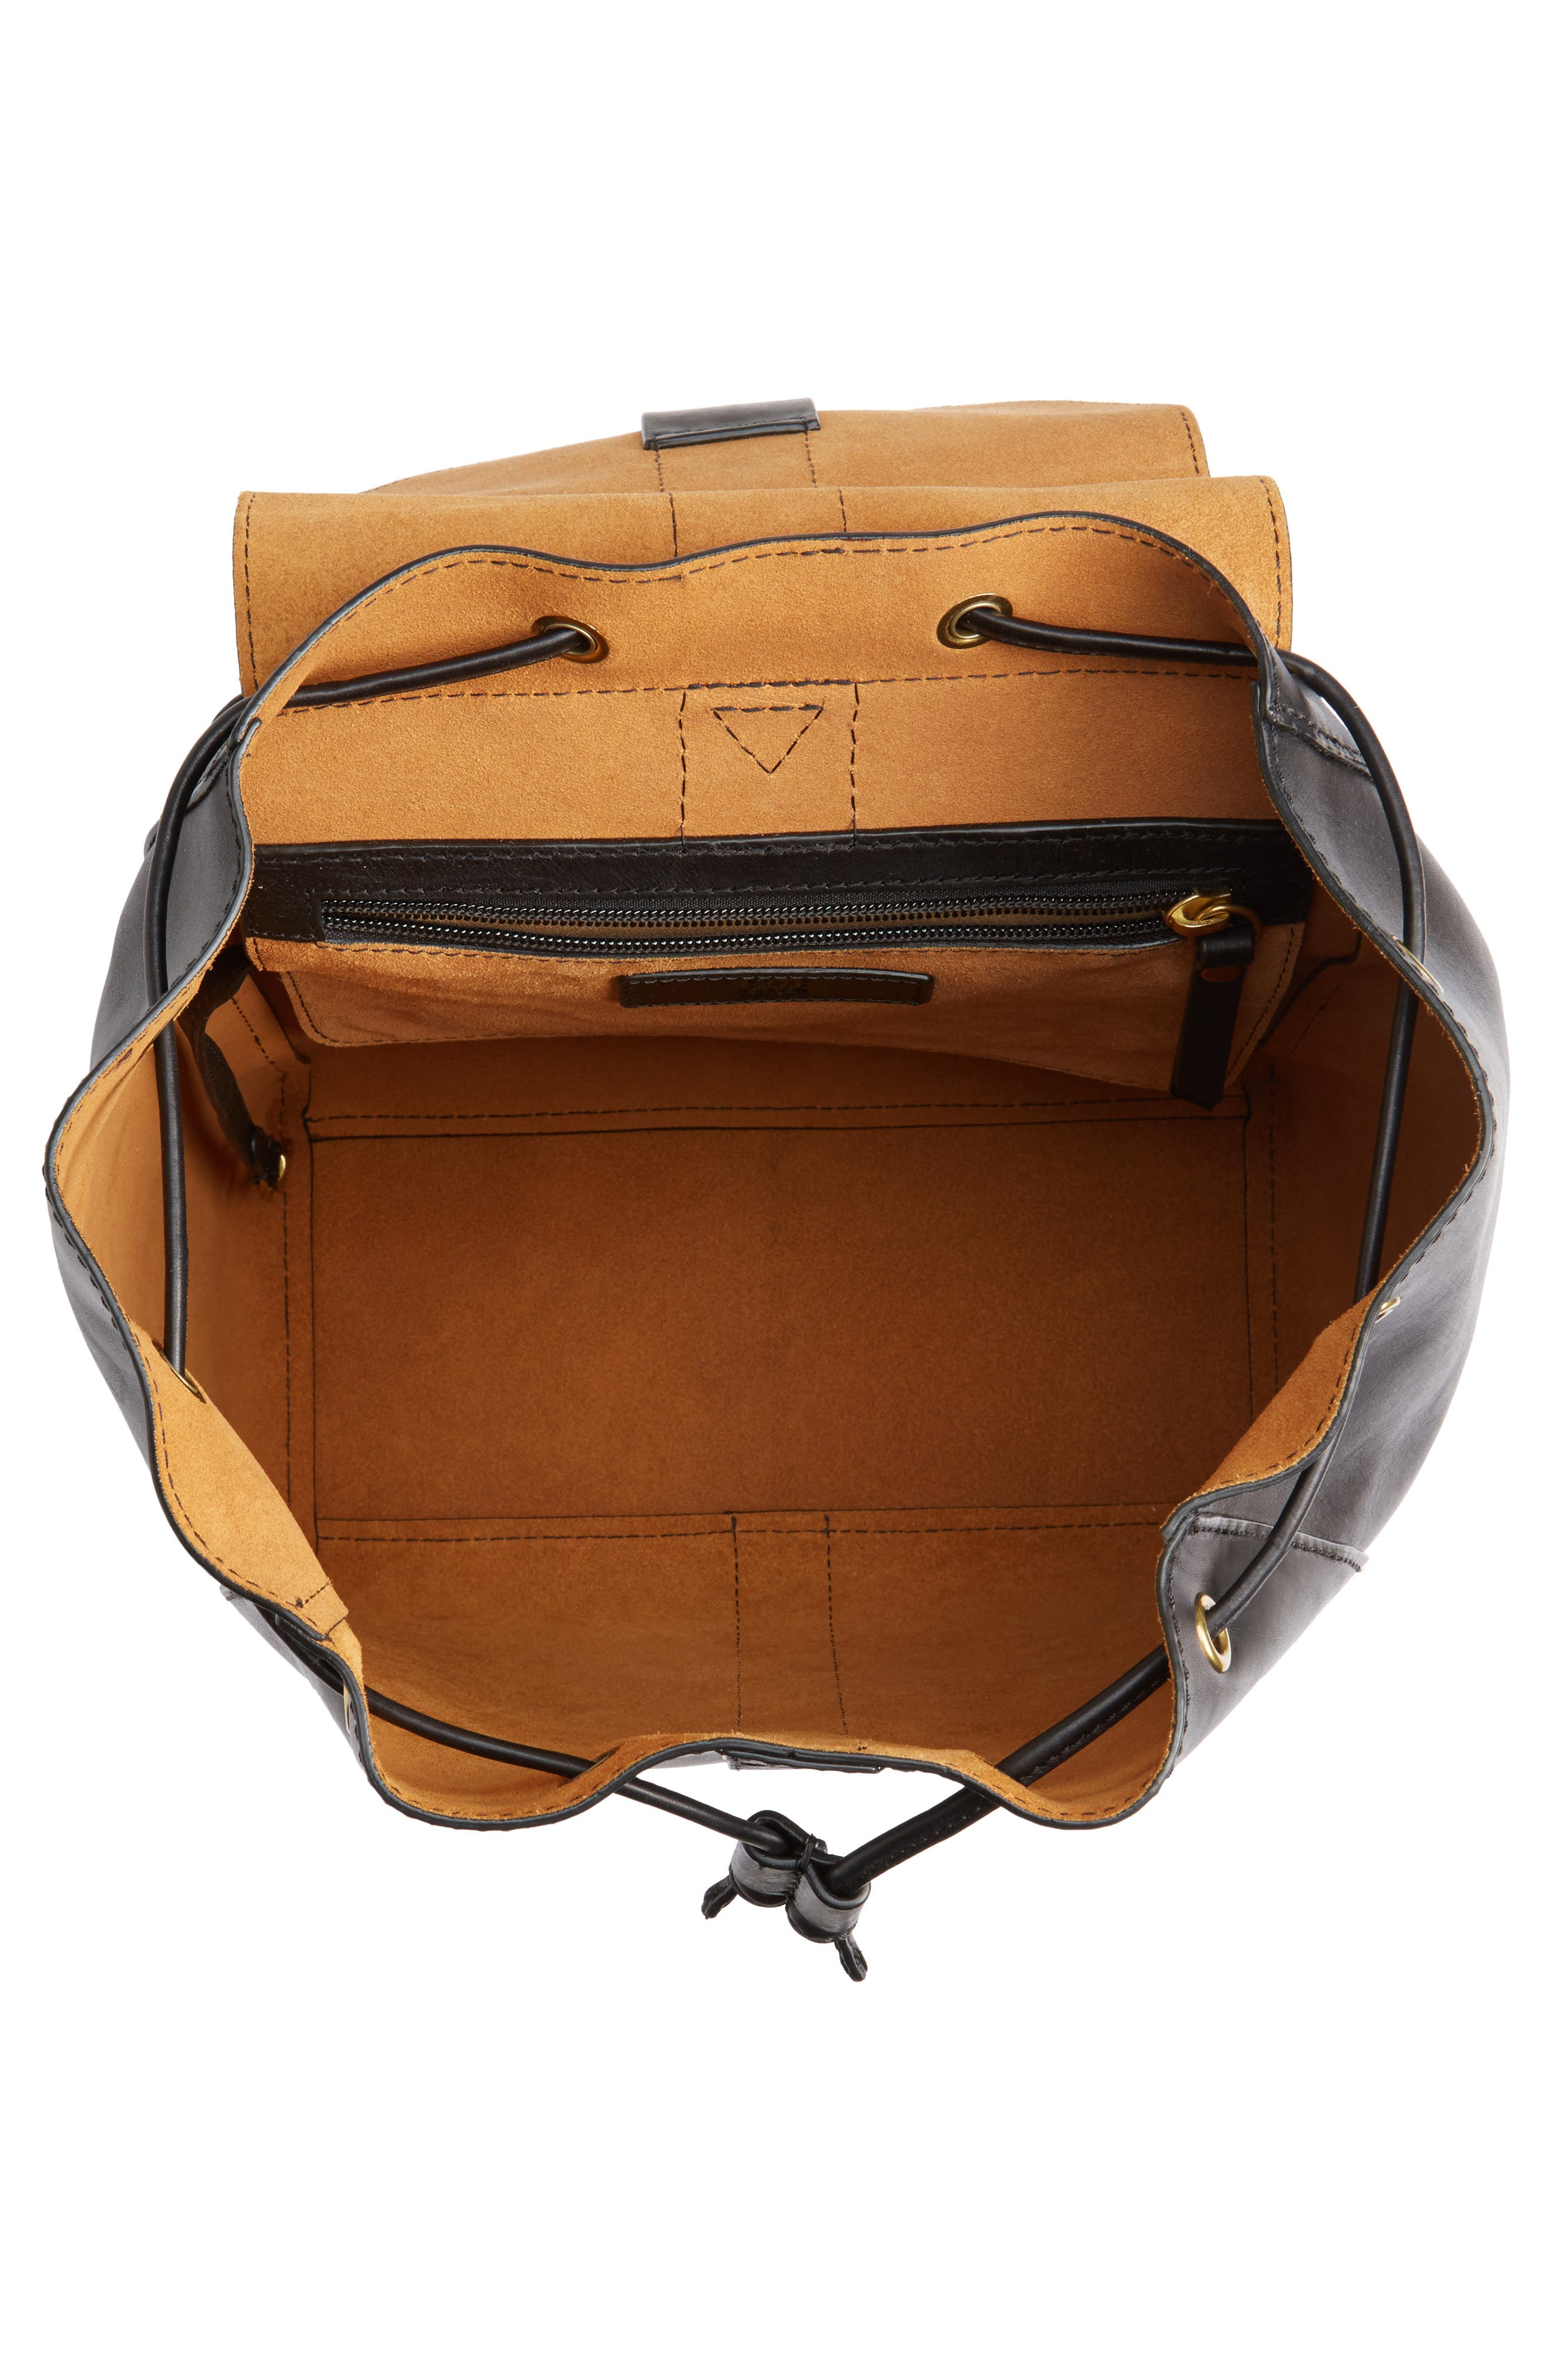 Ilana Harness Leather Backpack,                             Alternate thumbnail 4, color,                             001